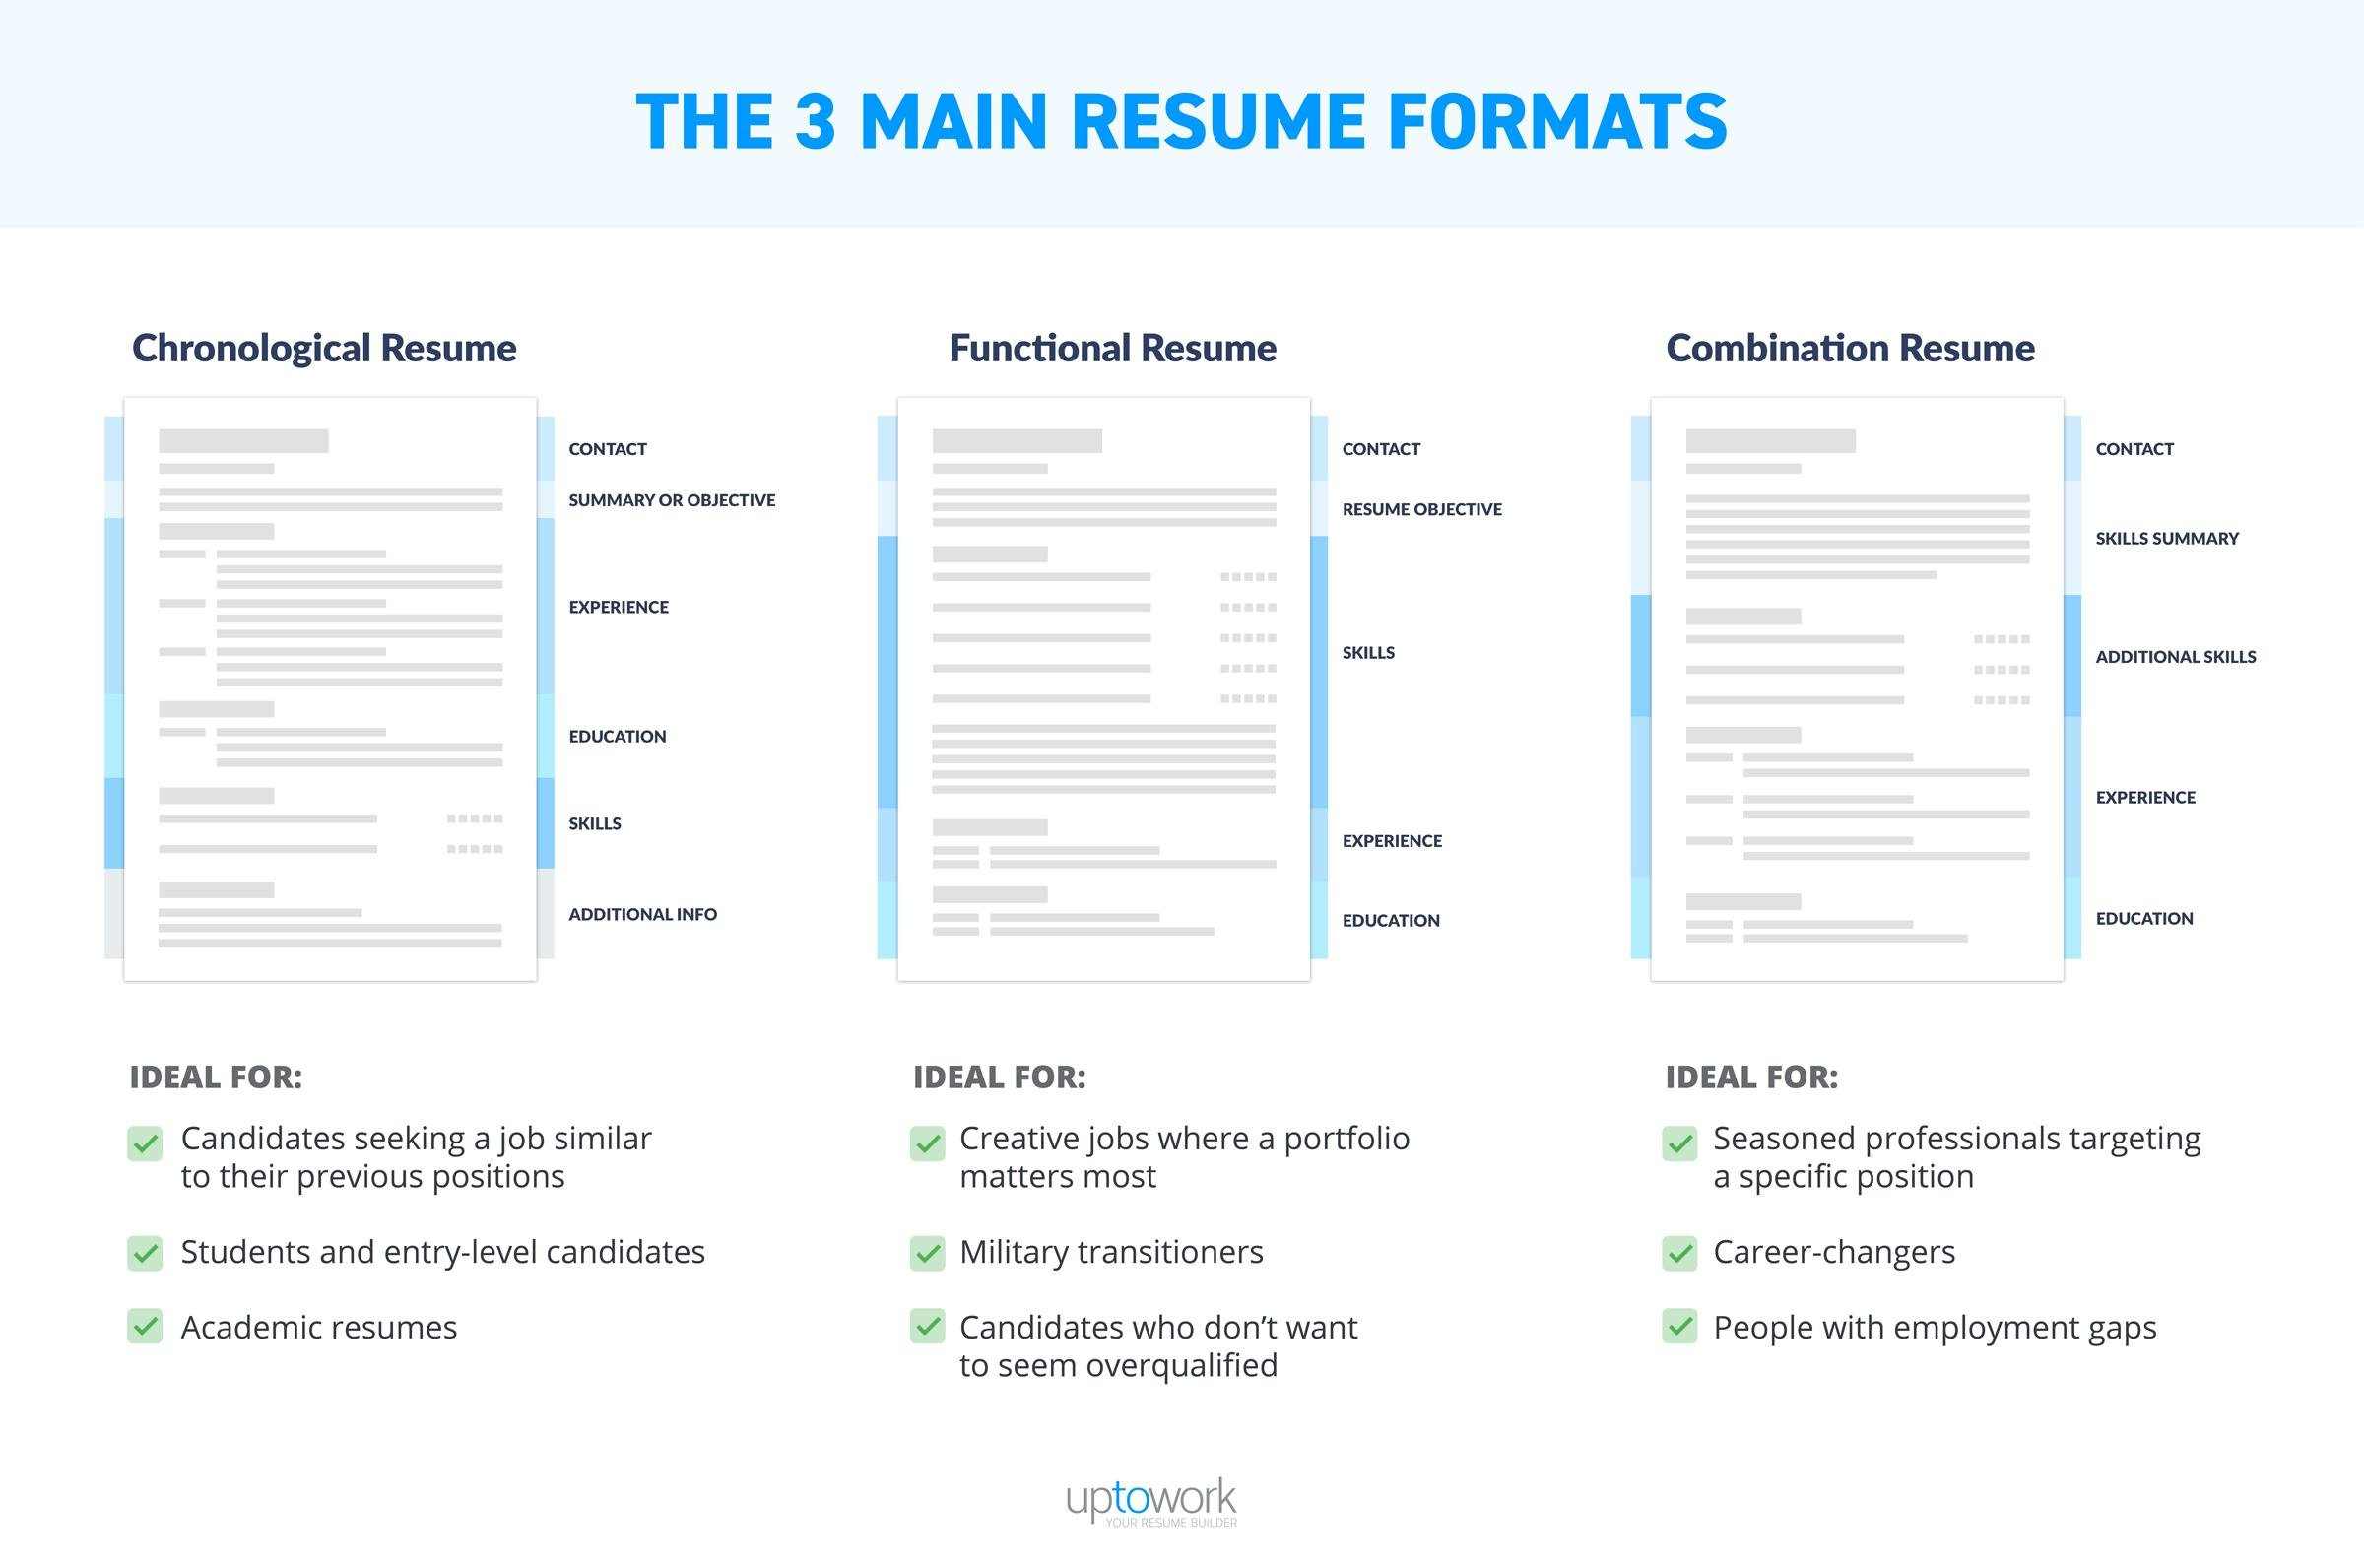 resume formats chronological functional combination - Resum Formate